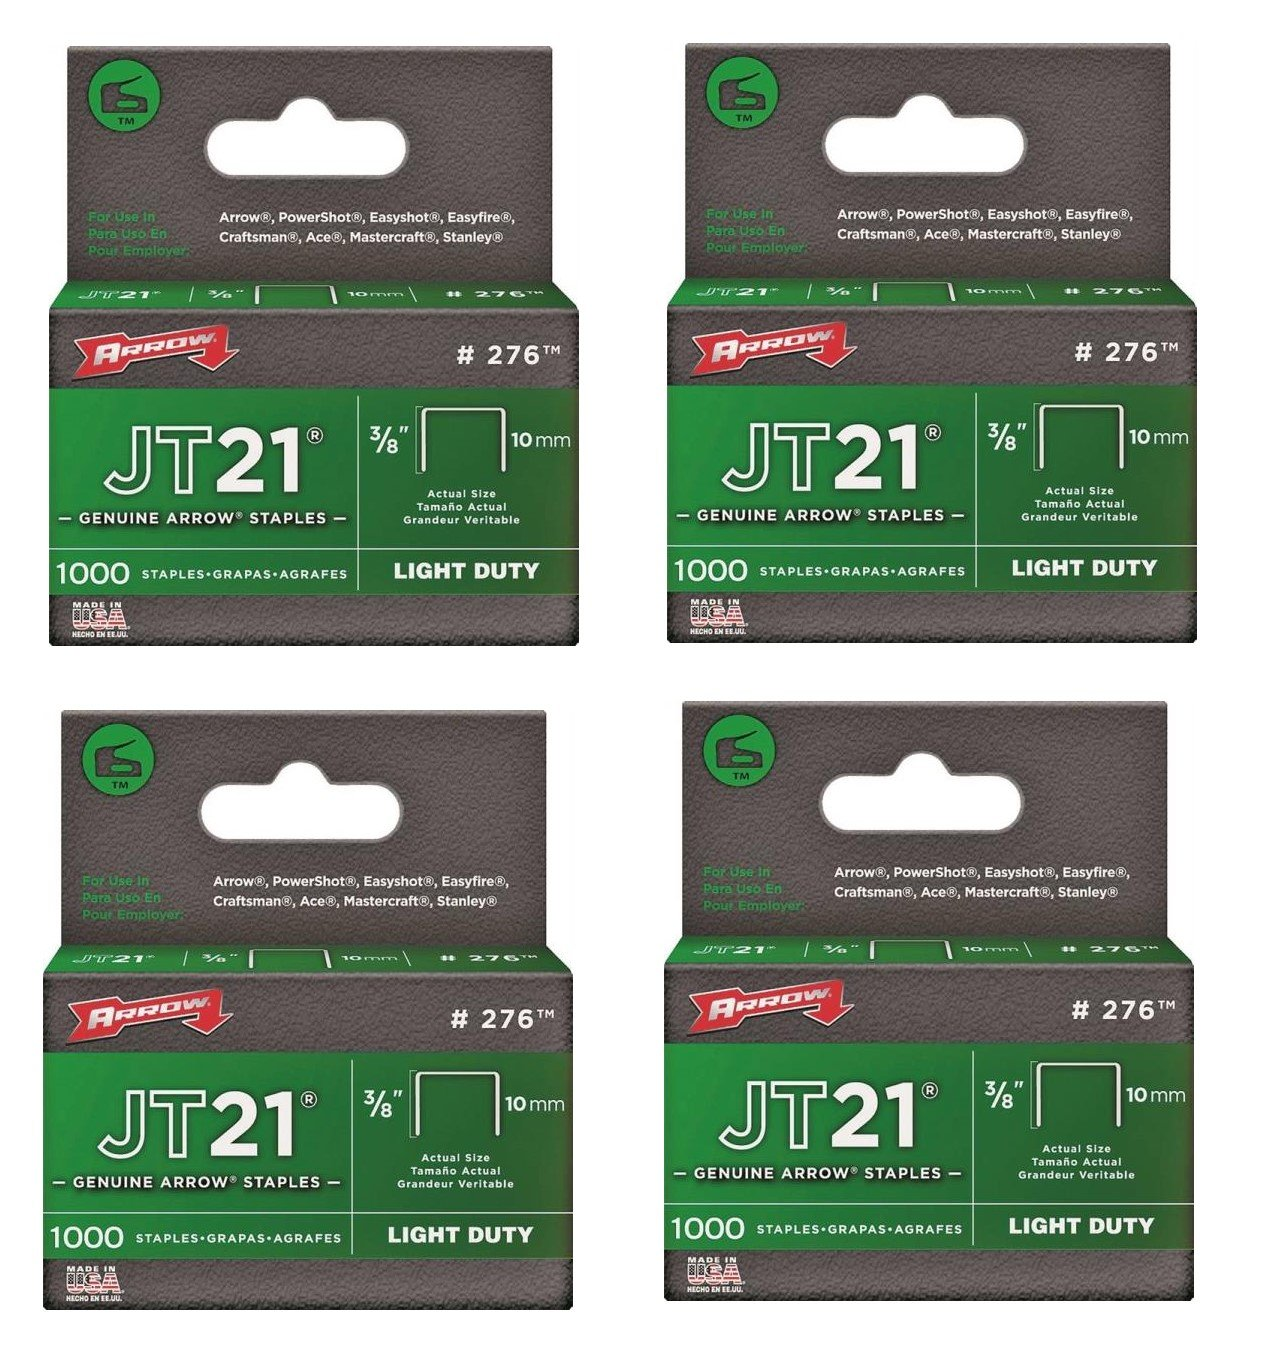 Arrow Fastener 276 3/8'' JT21 Staples